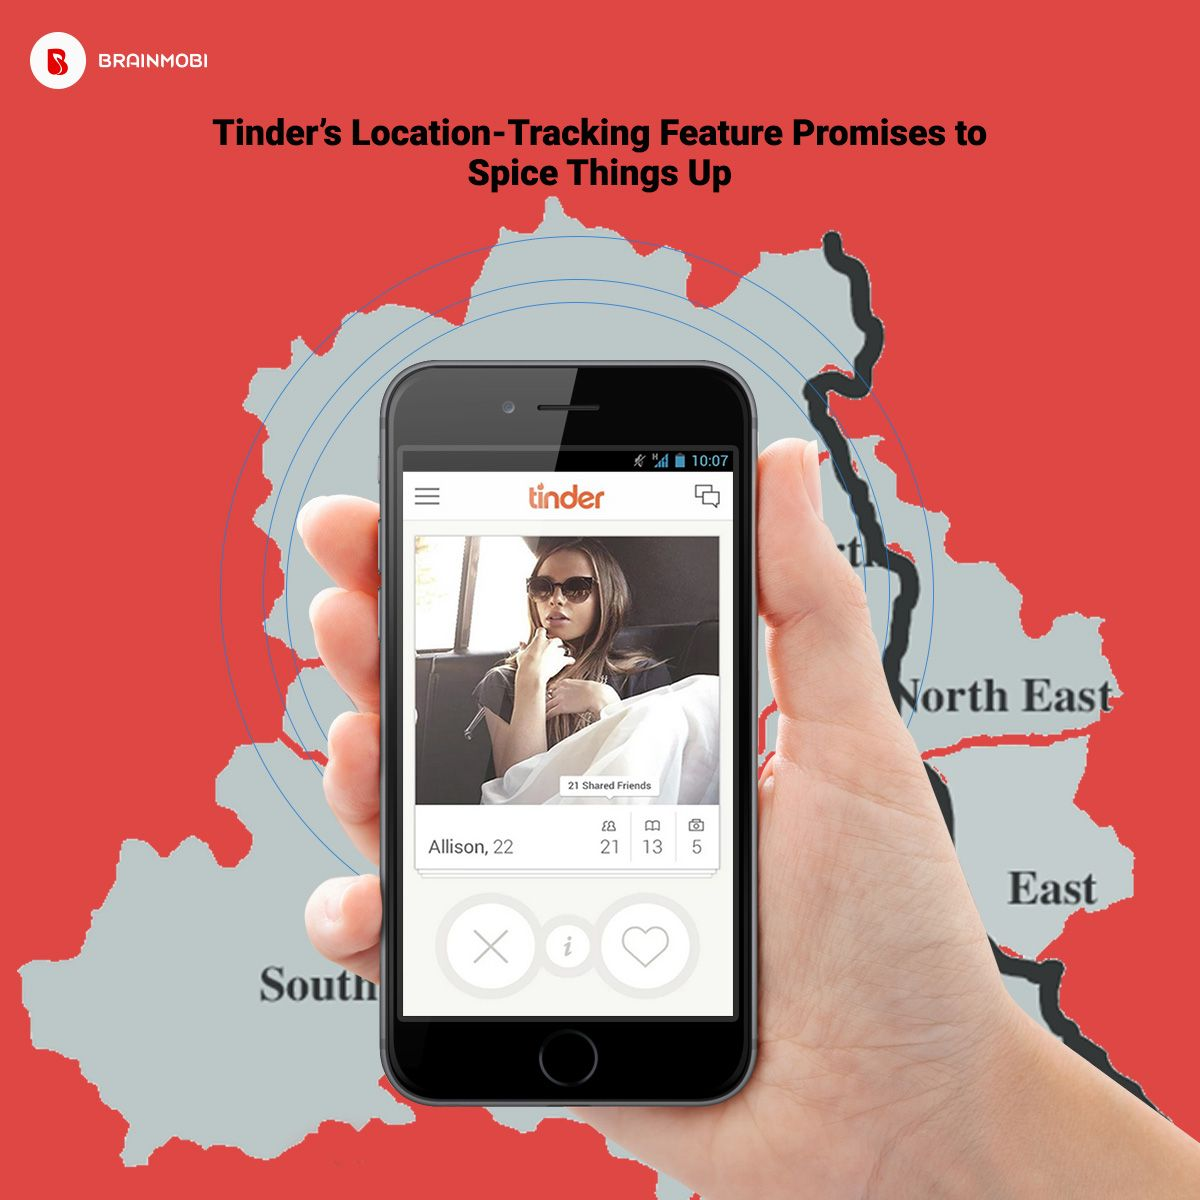 Tinder introduced new location tracking feature to enhance